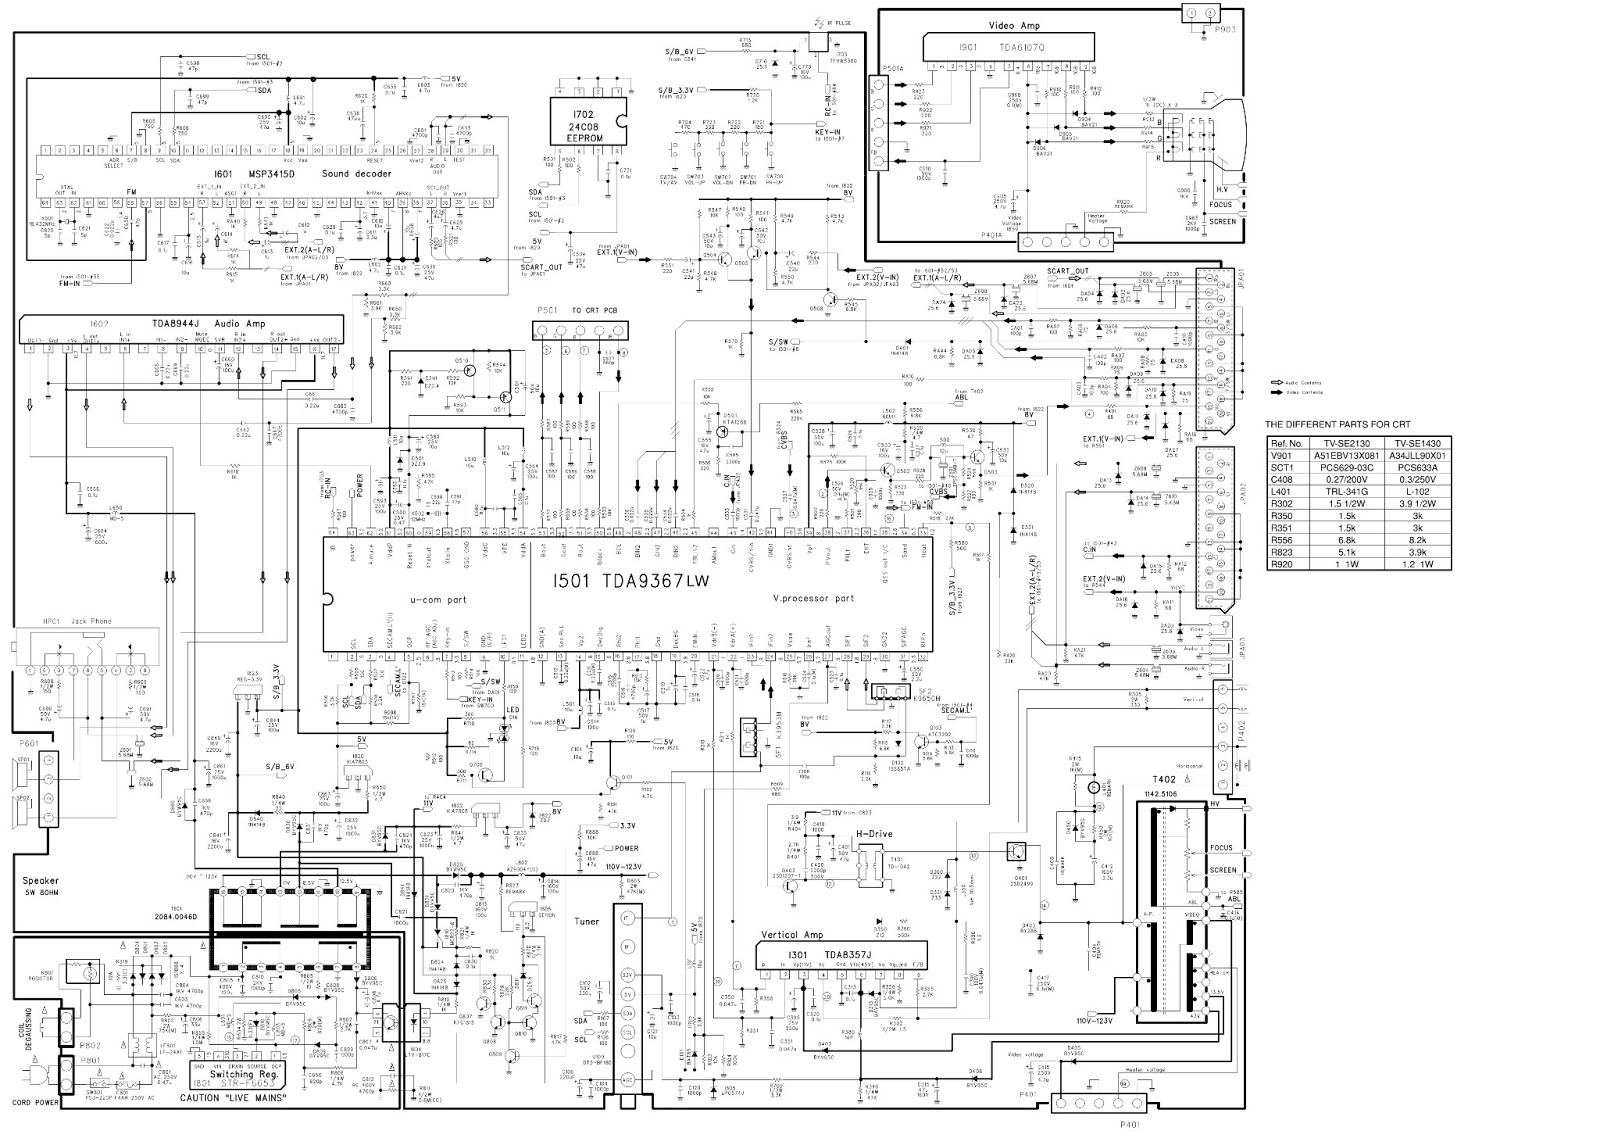 Aiwa Tv Circuit Diagram Wiring Diagrams For Dummies Electronic Blogspot Se2130 Se1430 Schematic Used Ics Rh Electronicshelponline Com Rf Transmitter